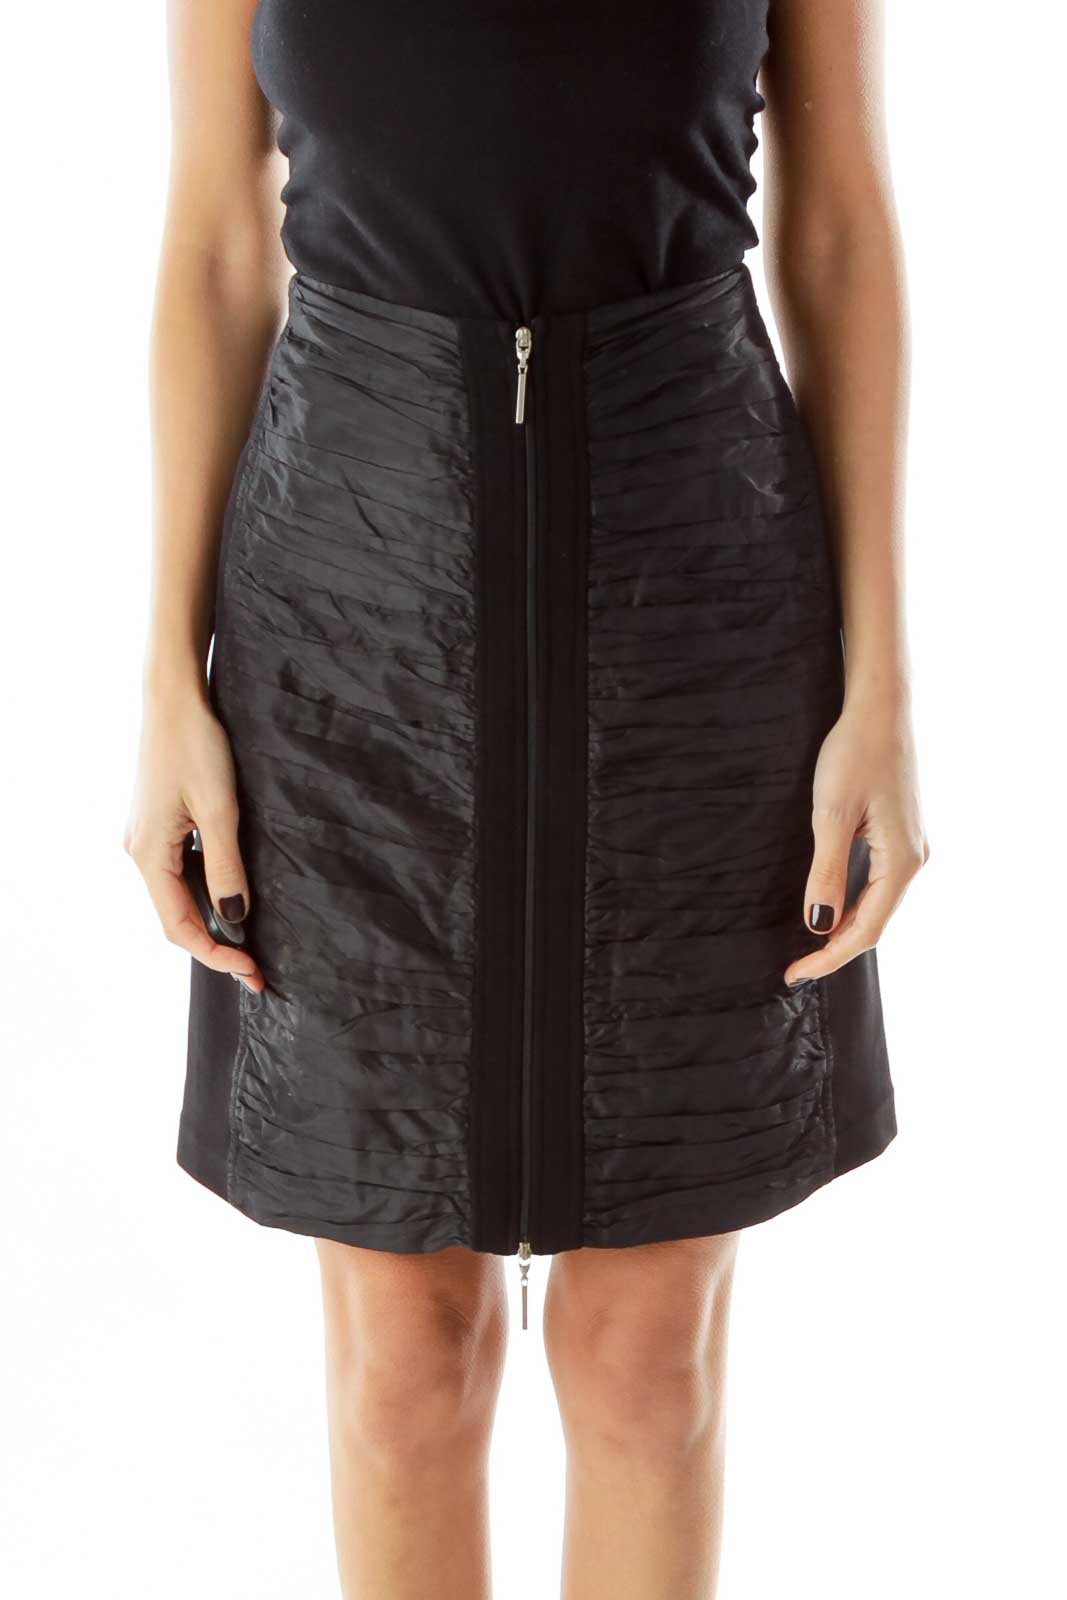 Black Scrunched Zippered SiIlk Skirt Front